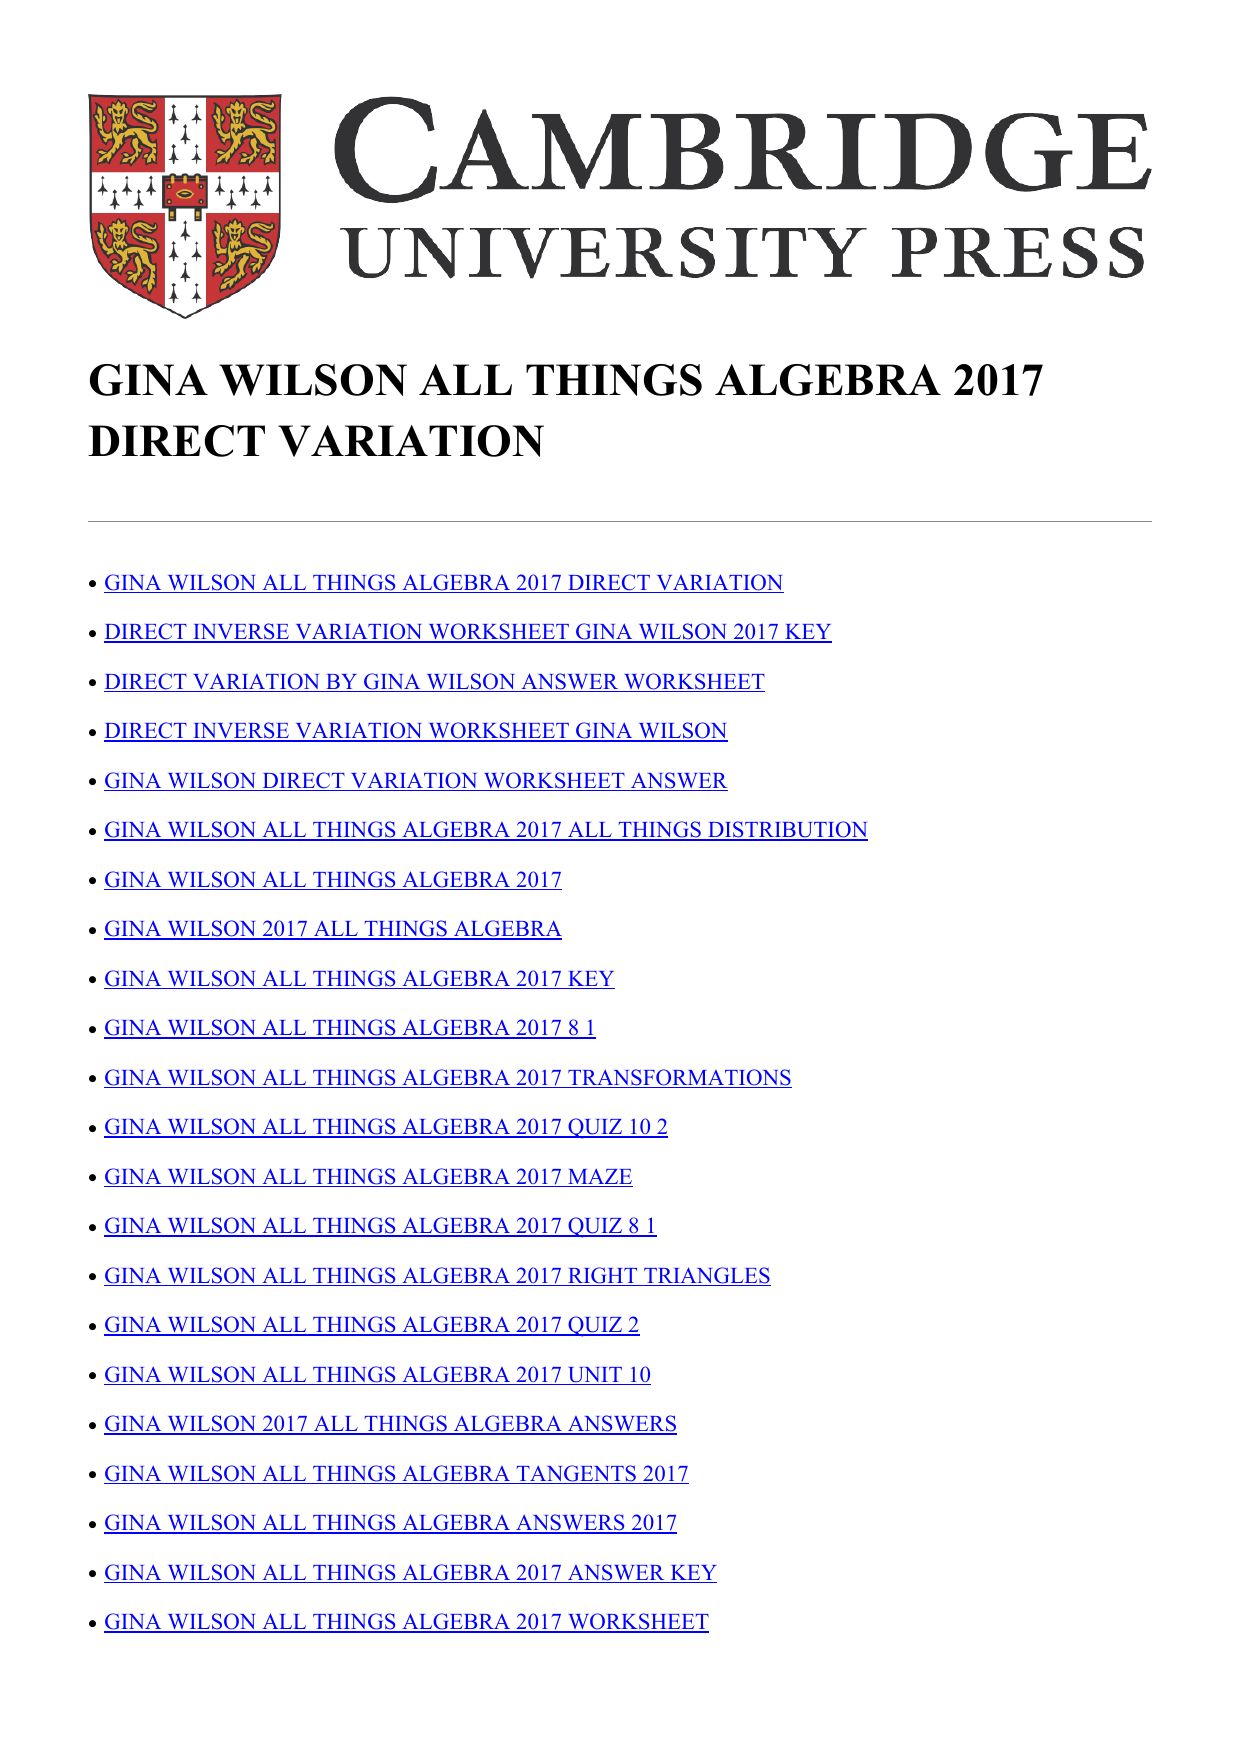 gina wilson all things algebra 2017 direct variation